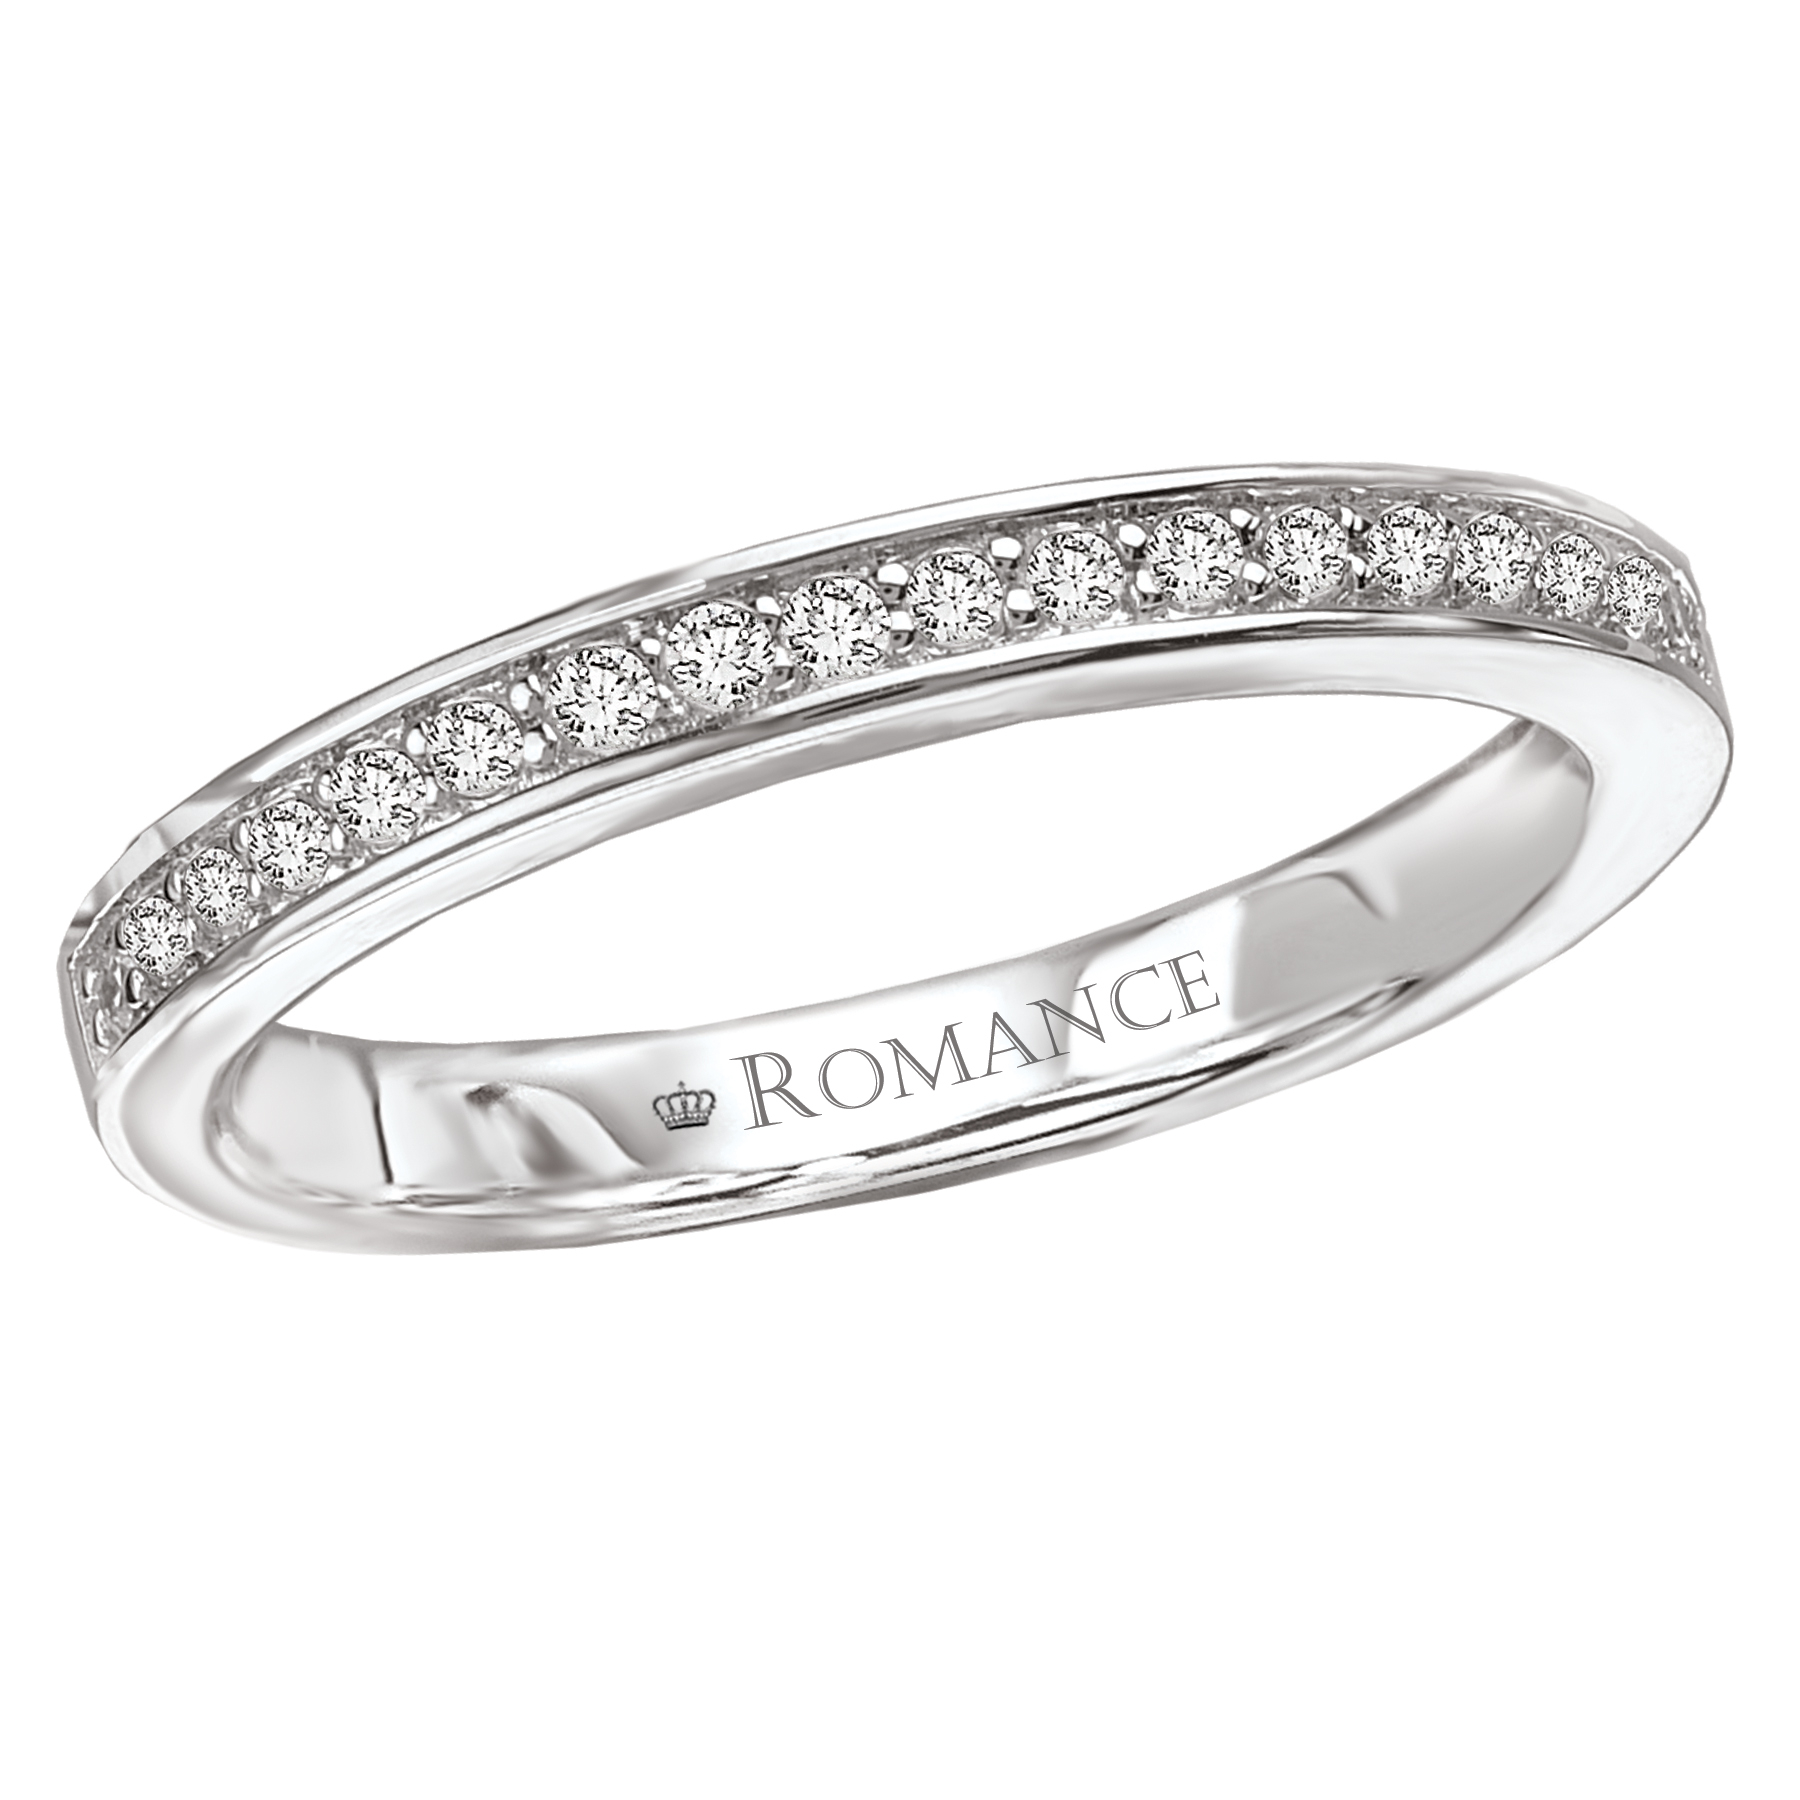 Romance Wedding Bands 117306-W product image